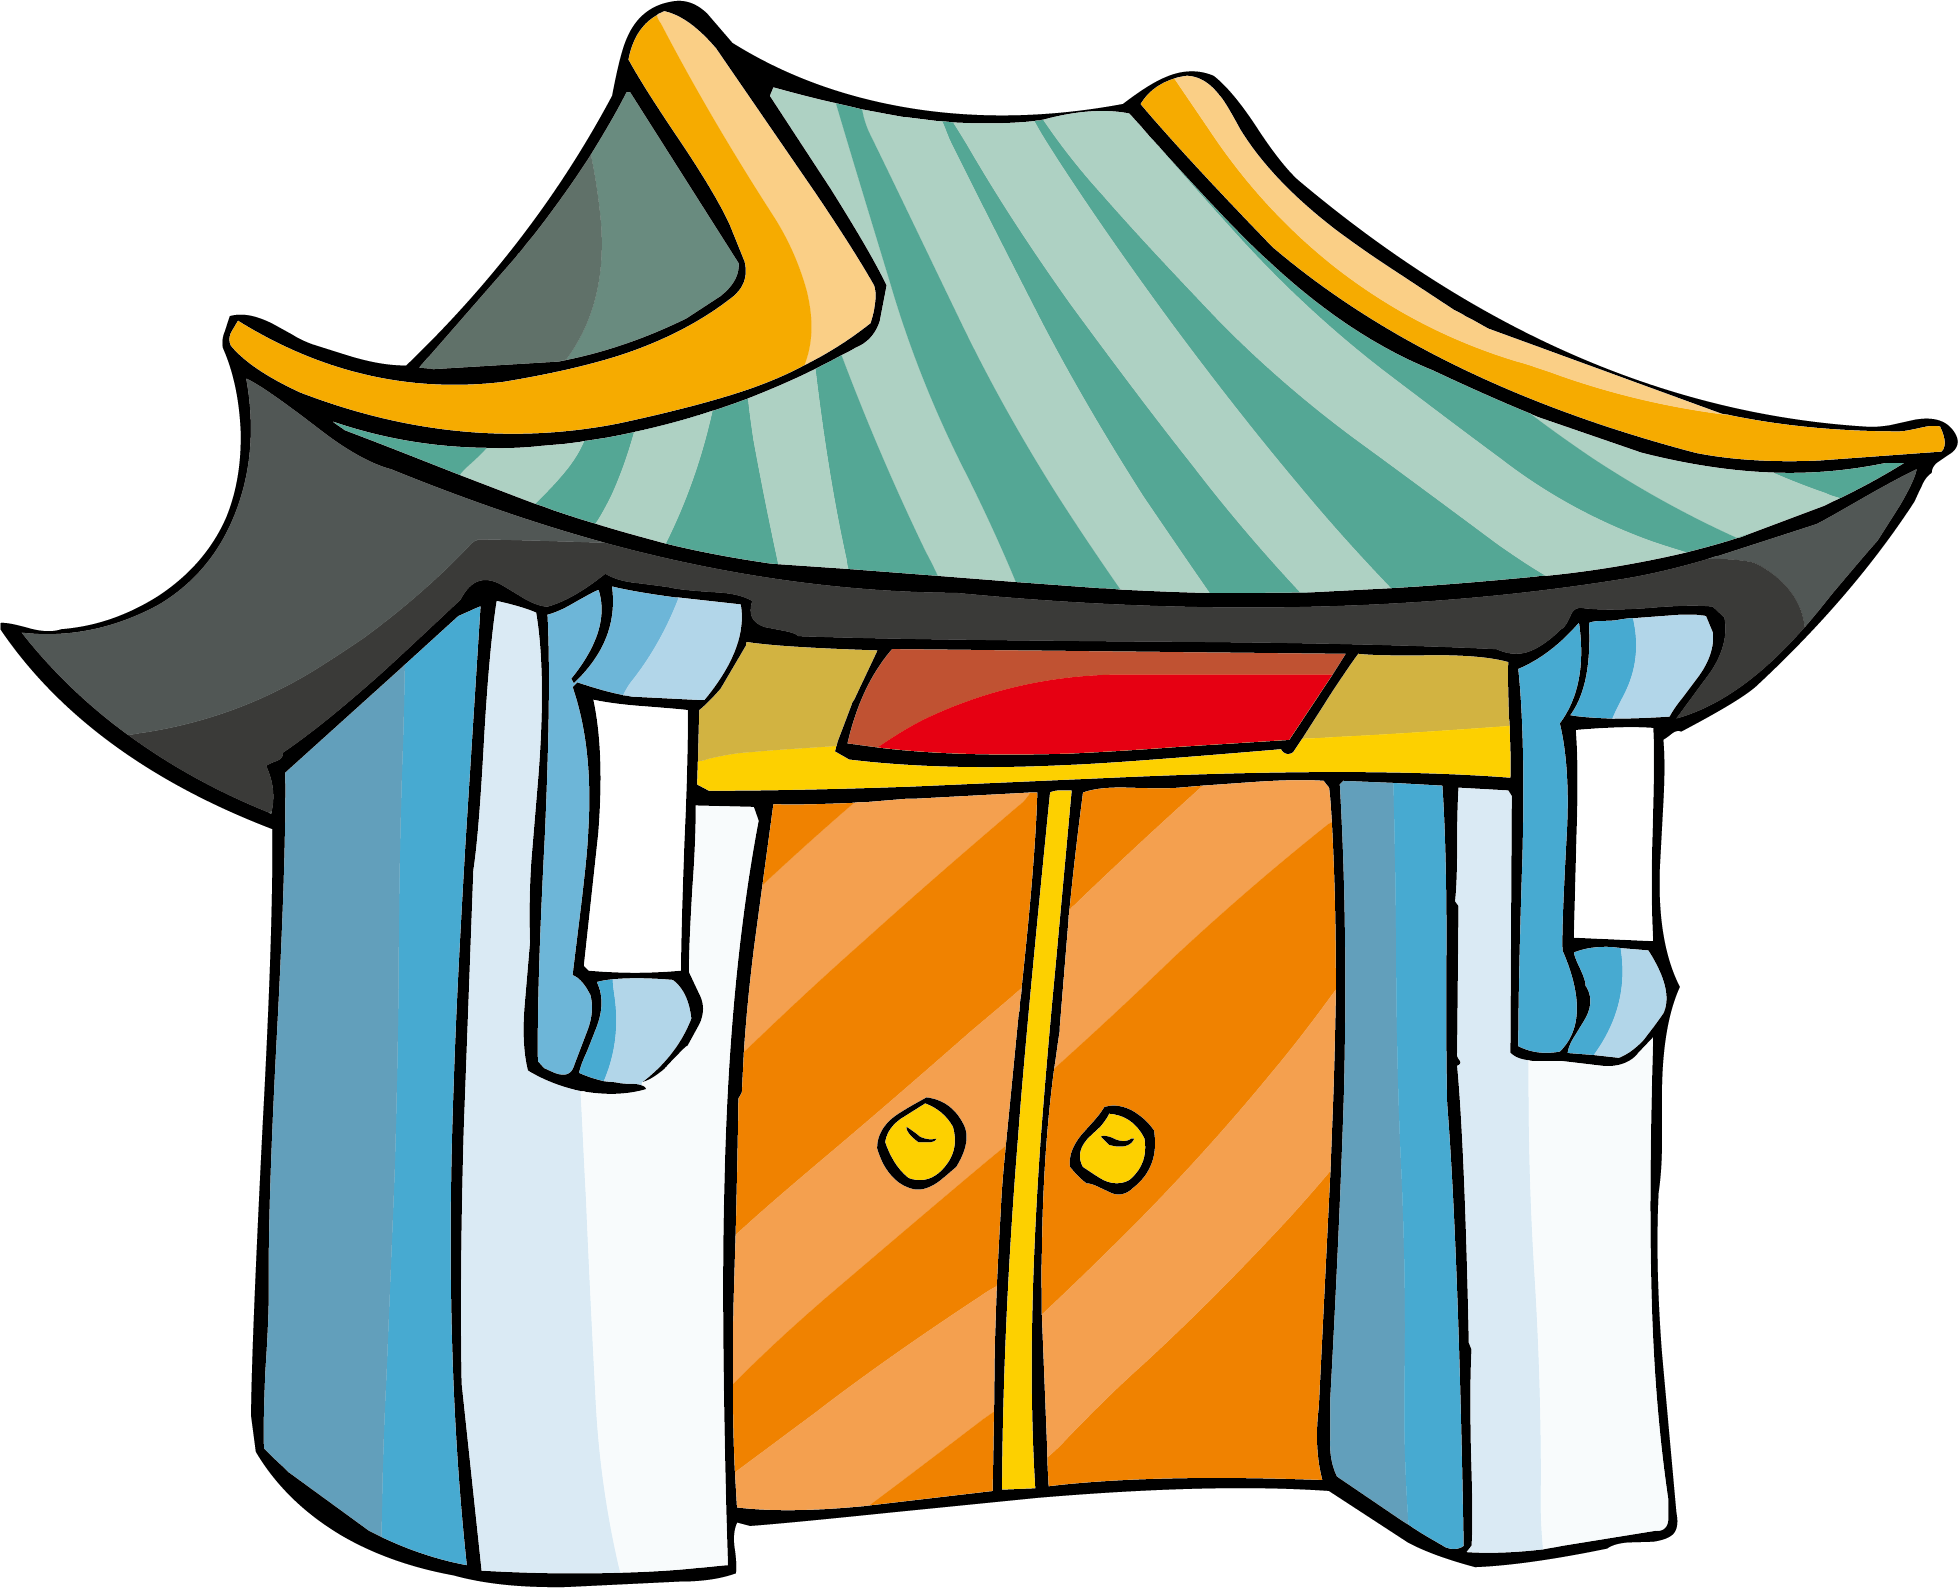 Gate clipart old gate. Chinese temple cartoon buddhist